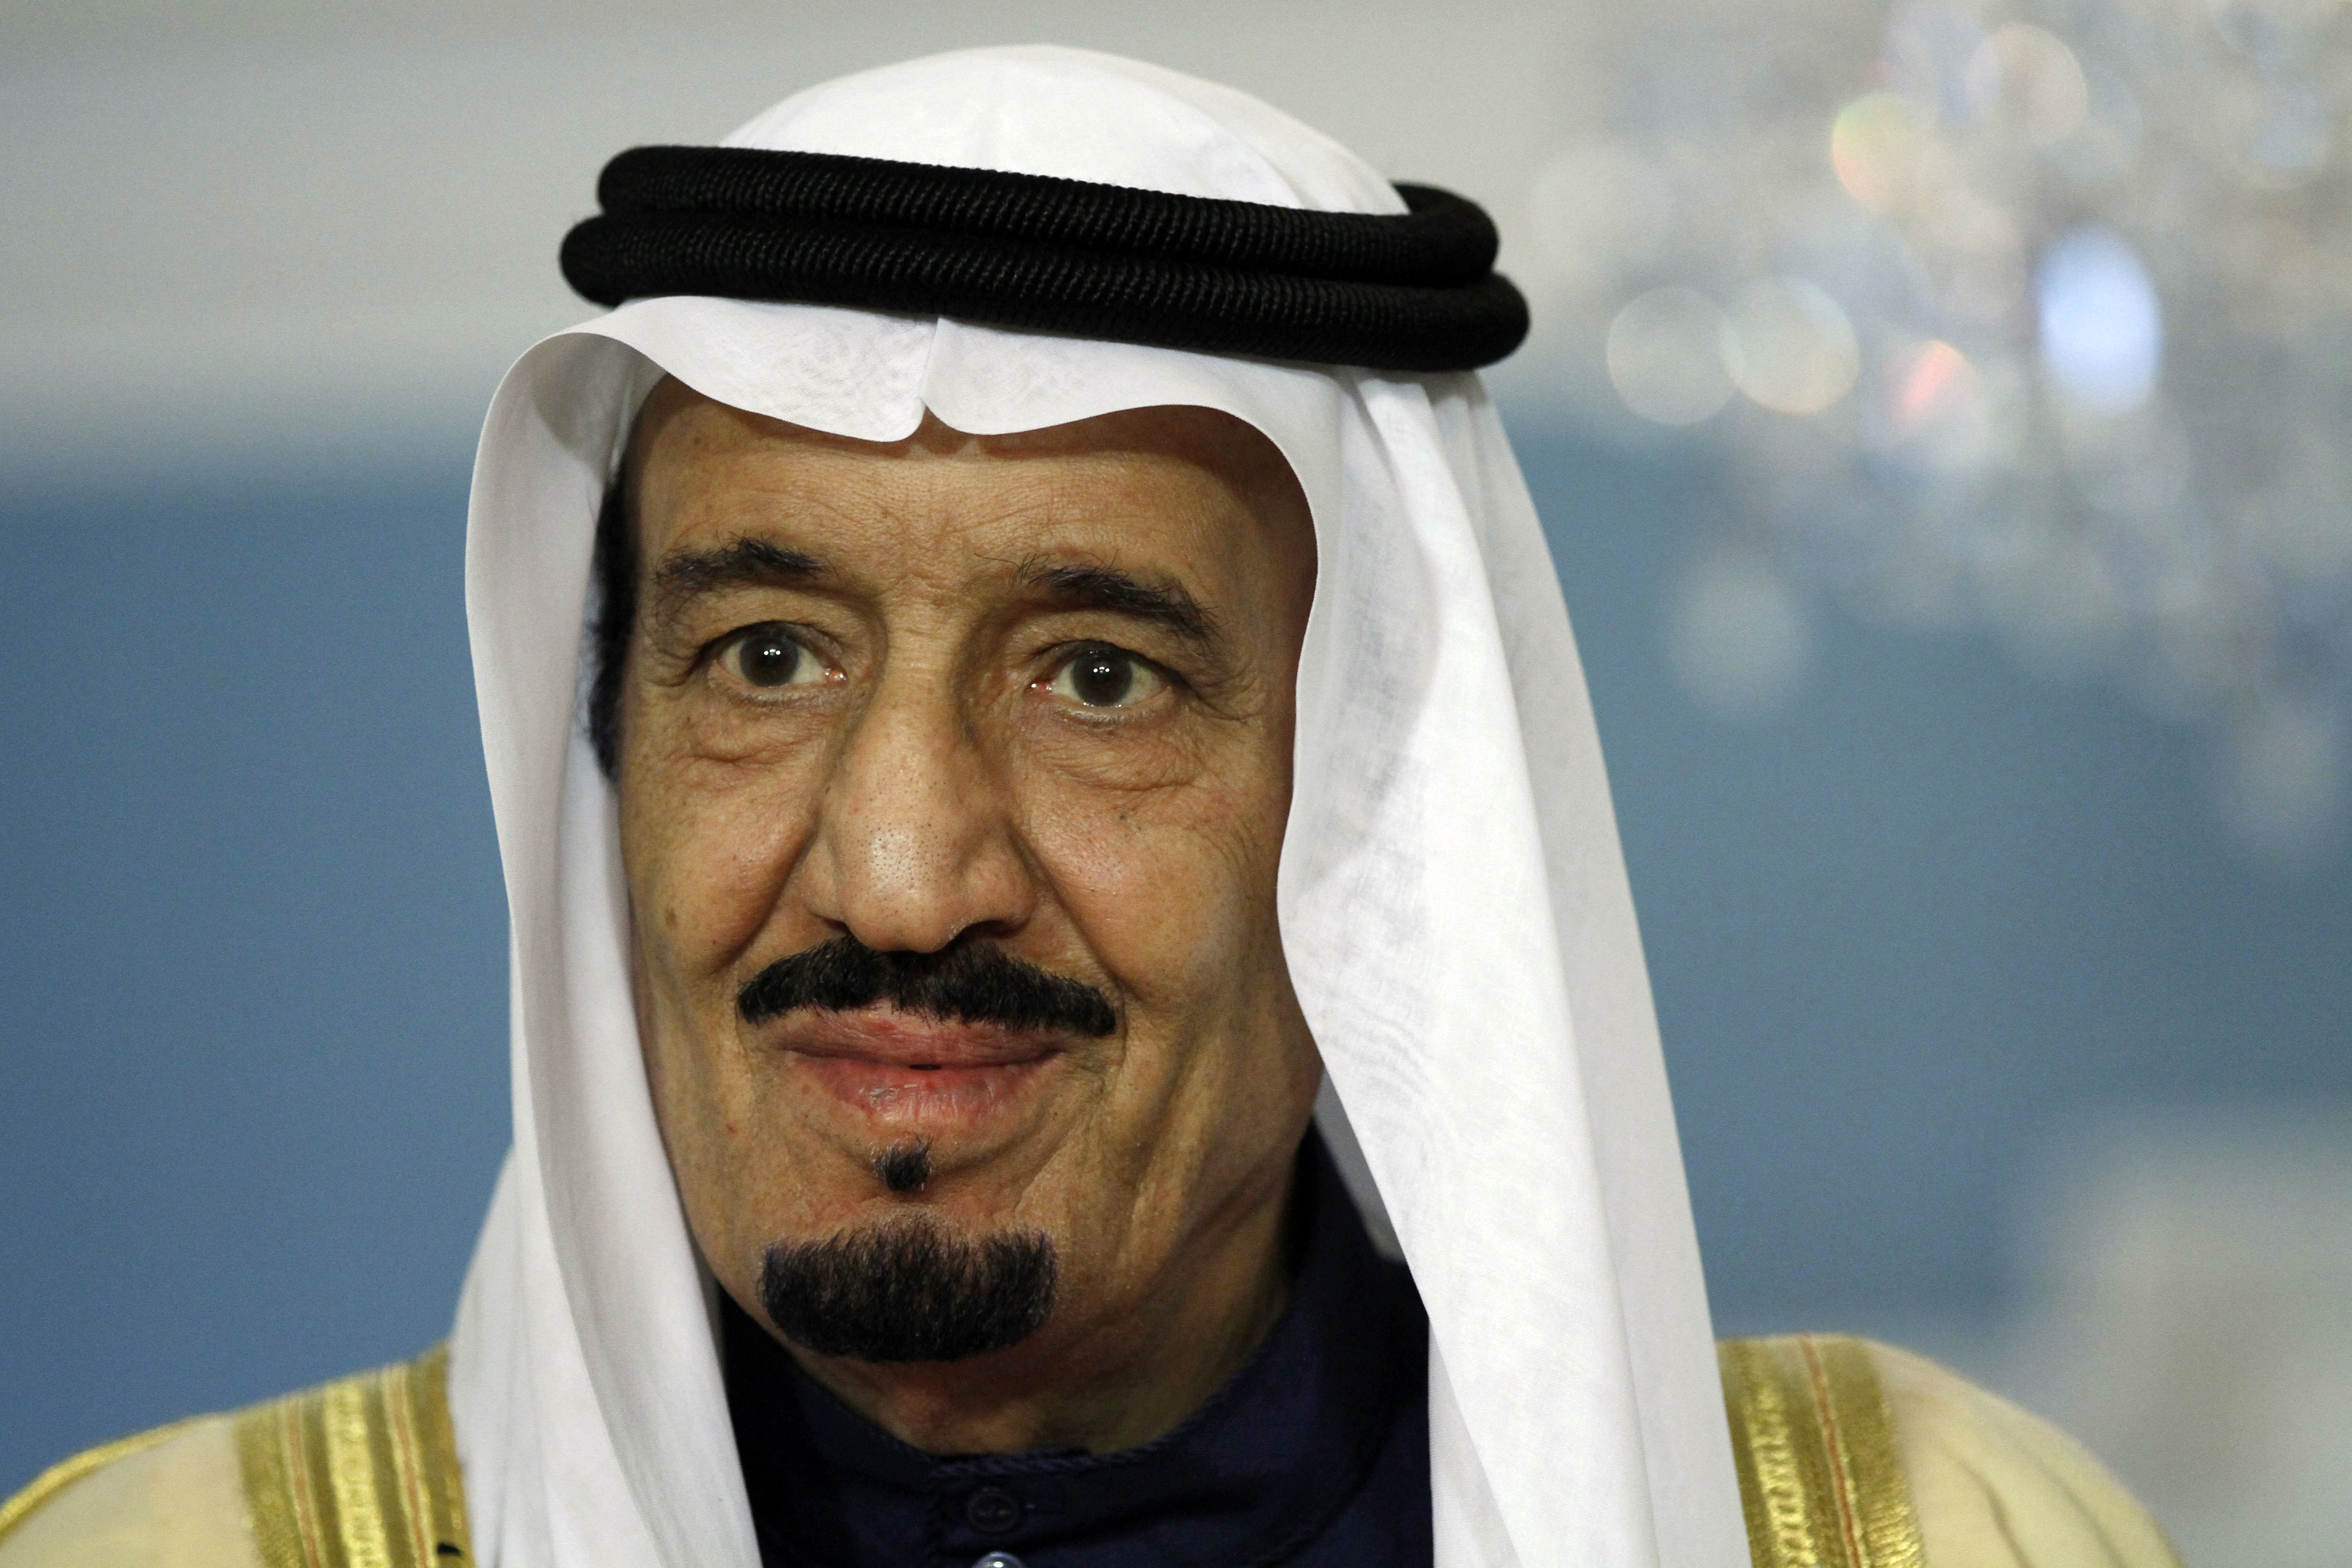 Then-Crown Prince Salman during a visit to Washington in 2012.